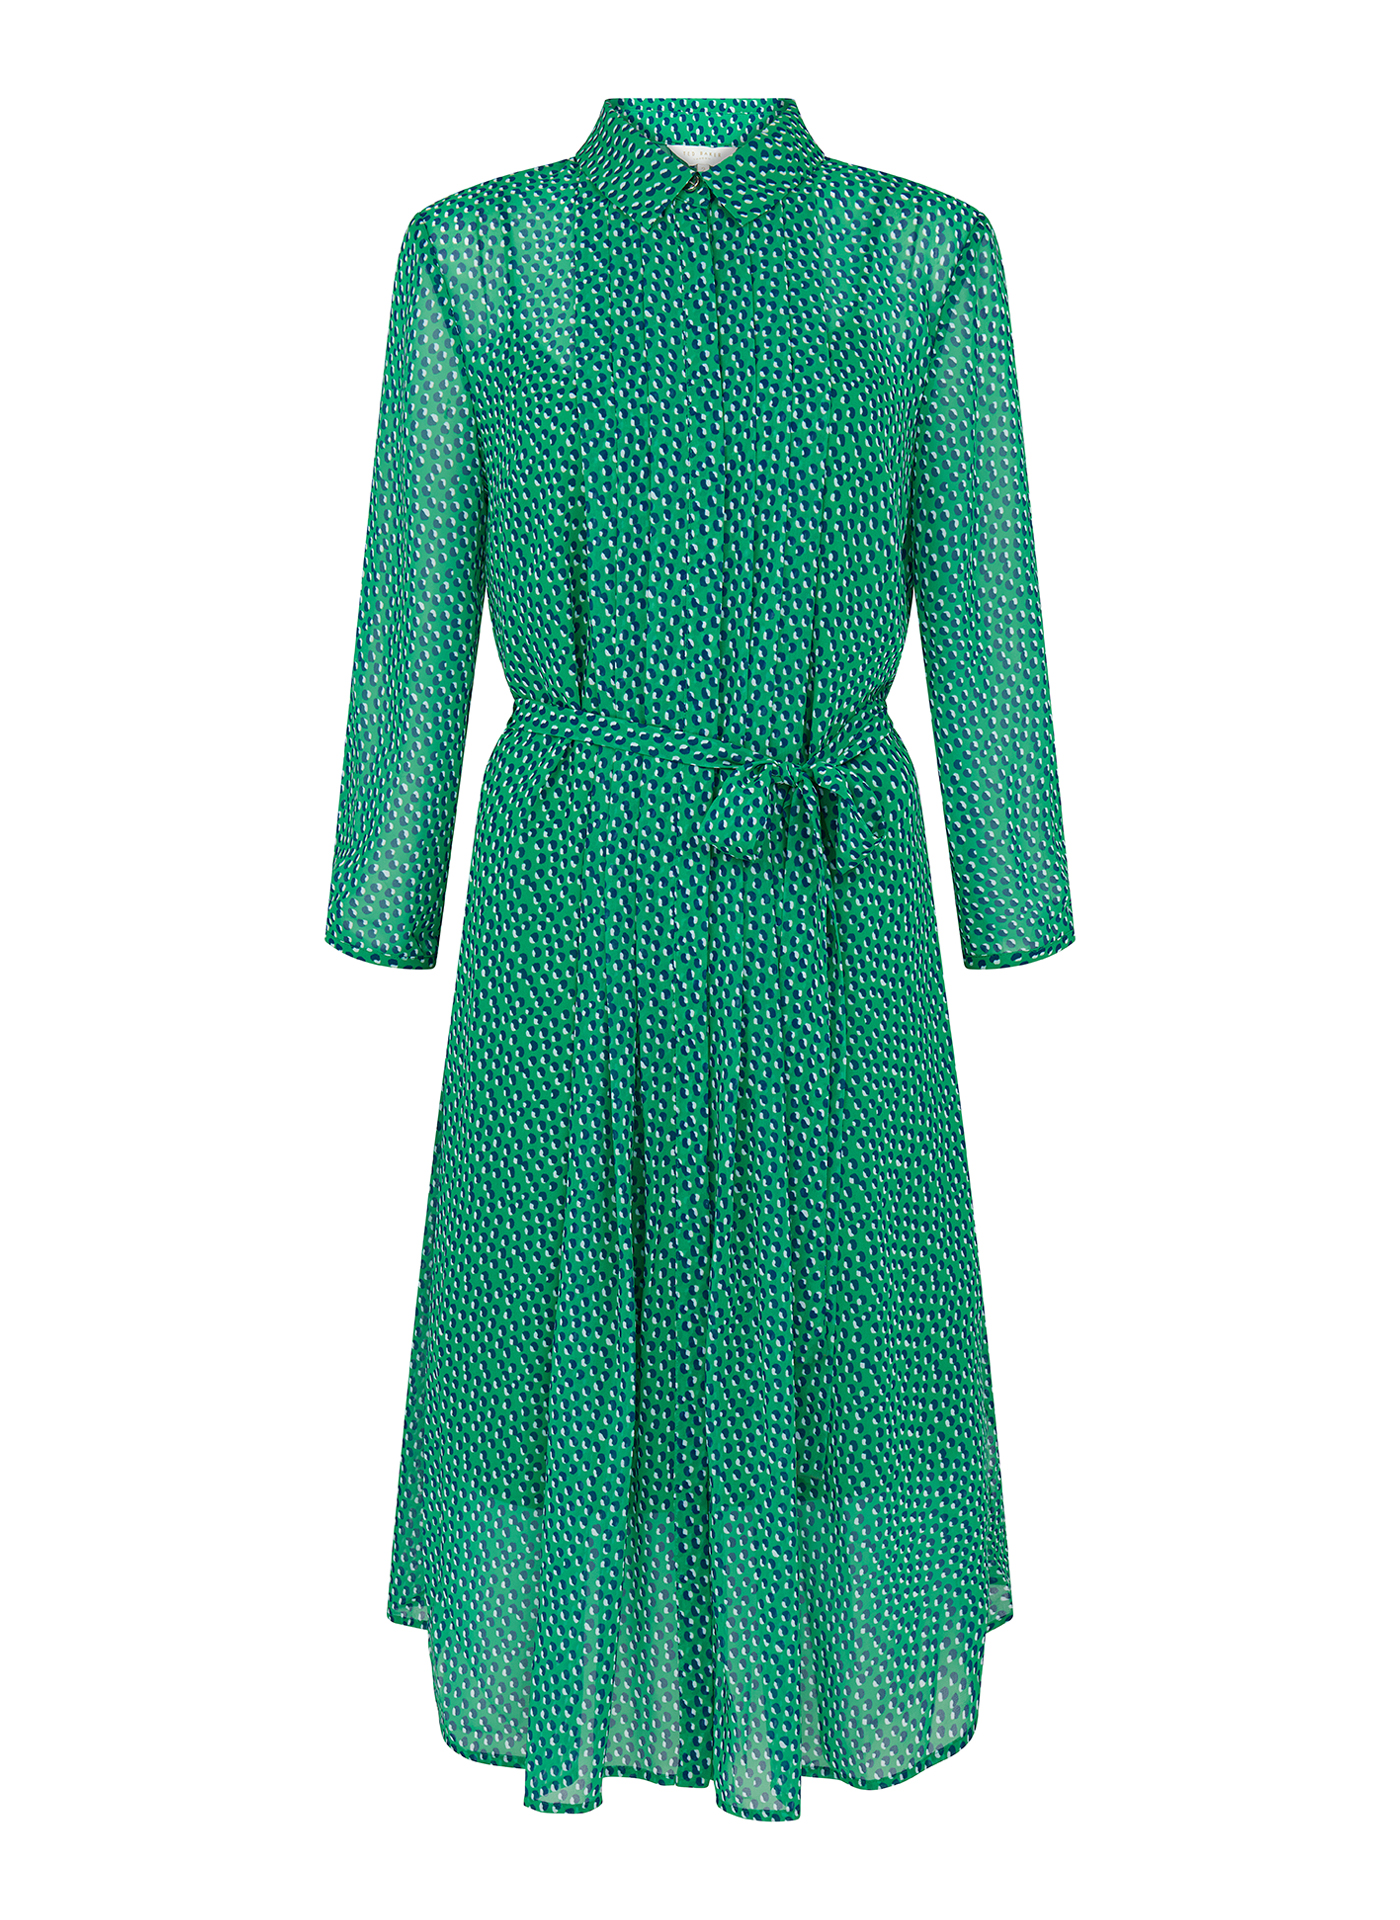 Ted Baker Electric green dress